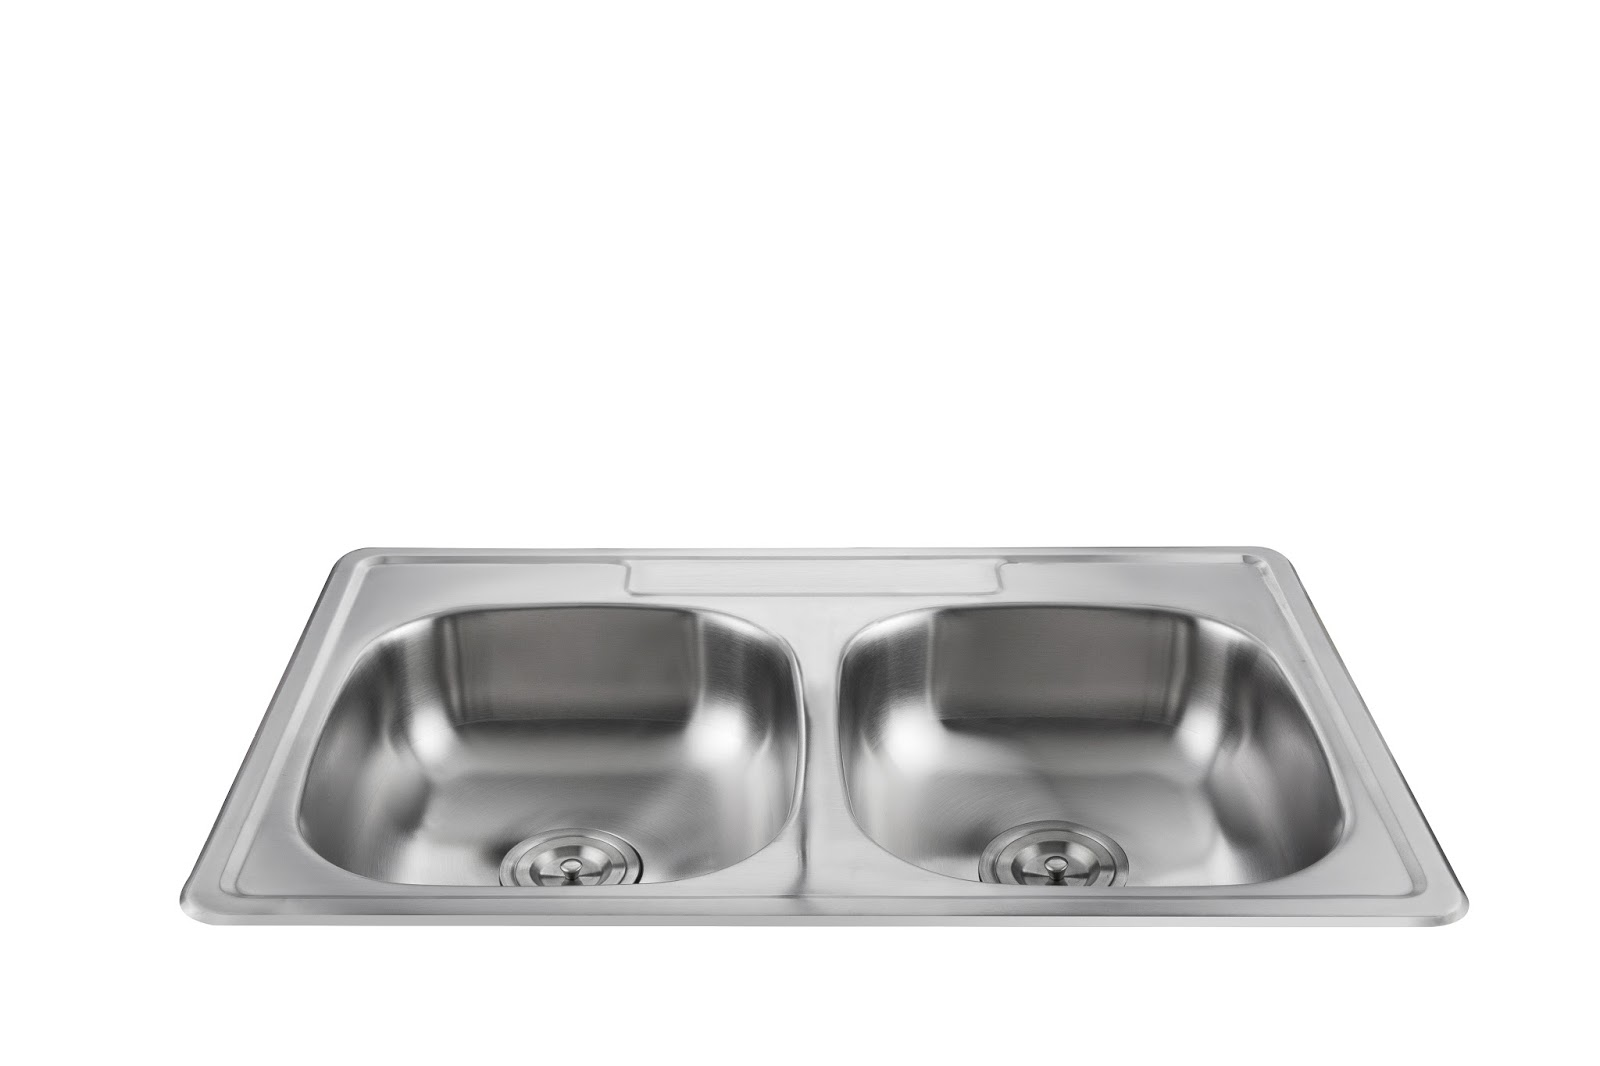 Stainless Steel Kitchen Sink Manufacturer: best place to buy ...